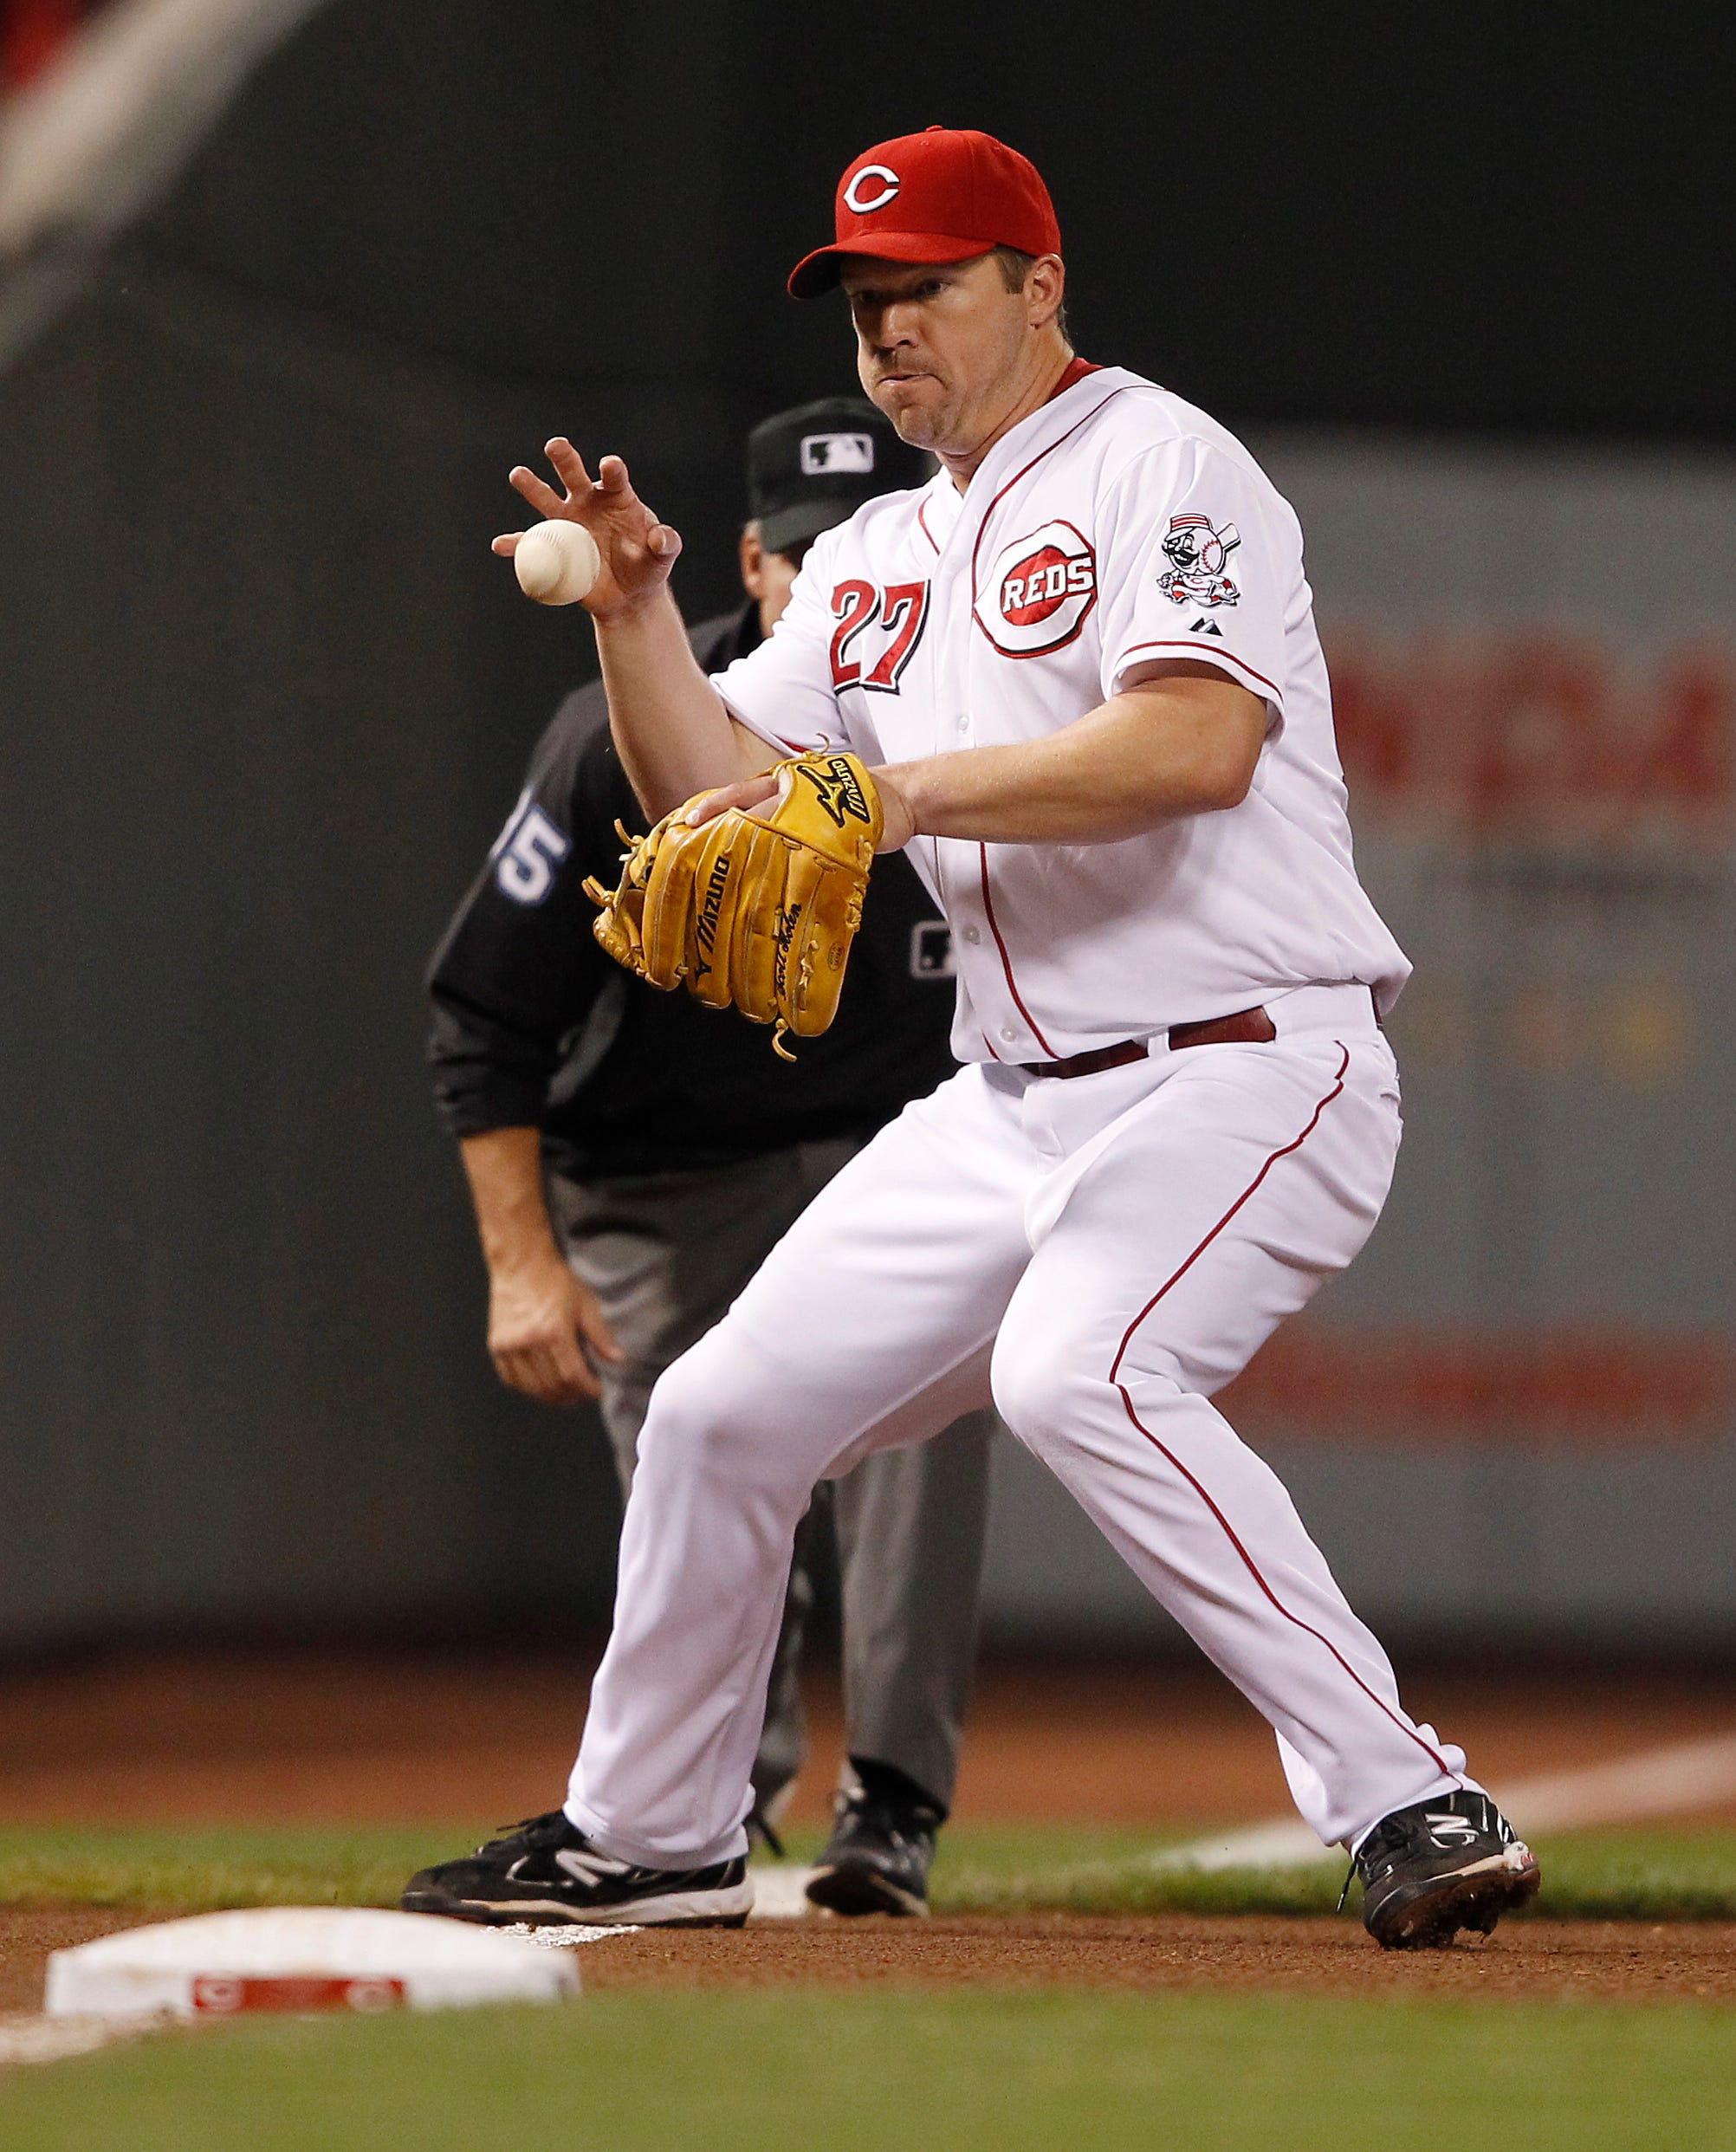 Rolen, Held inducted into Reading Baseball Hall of Fame | Reading ...